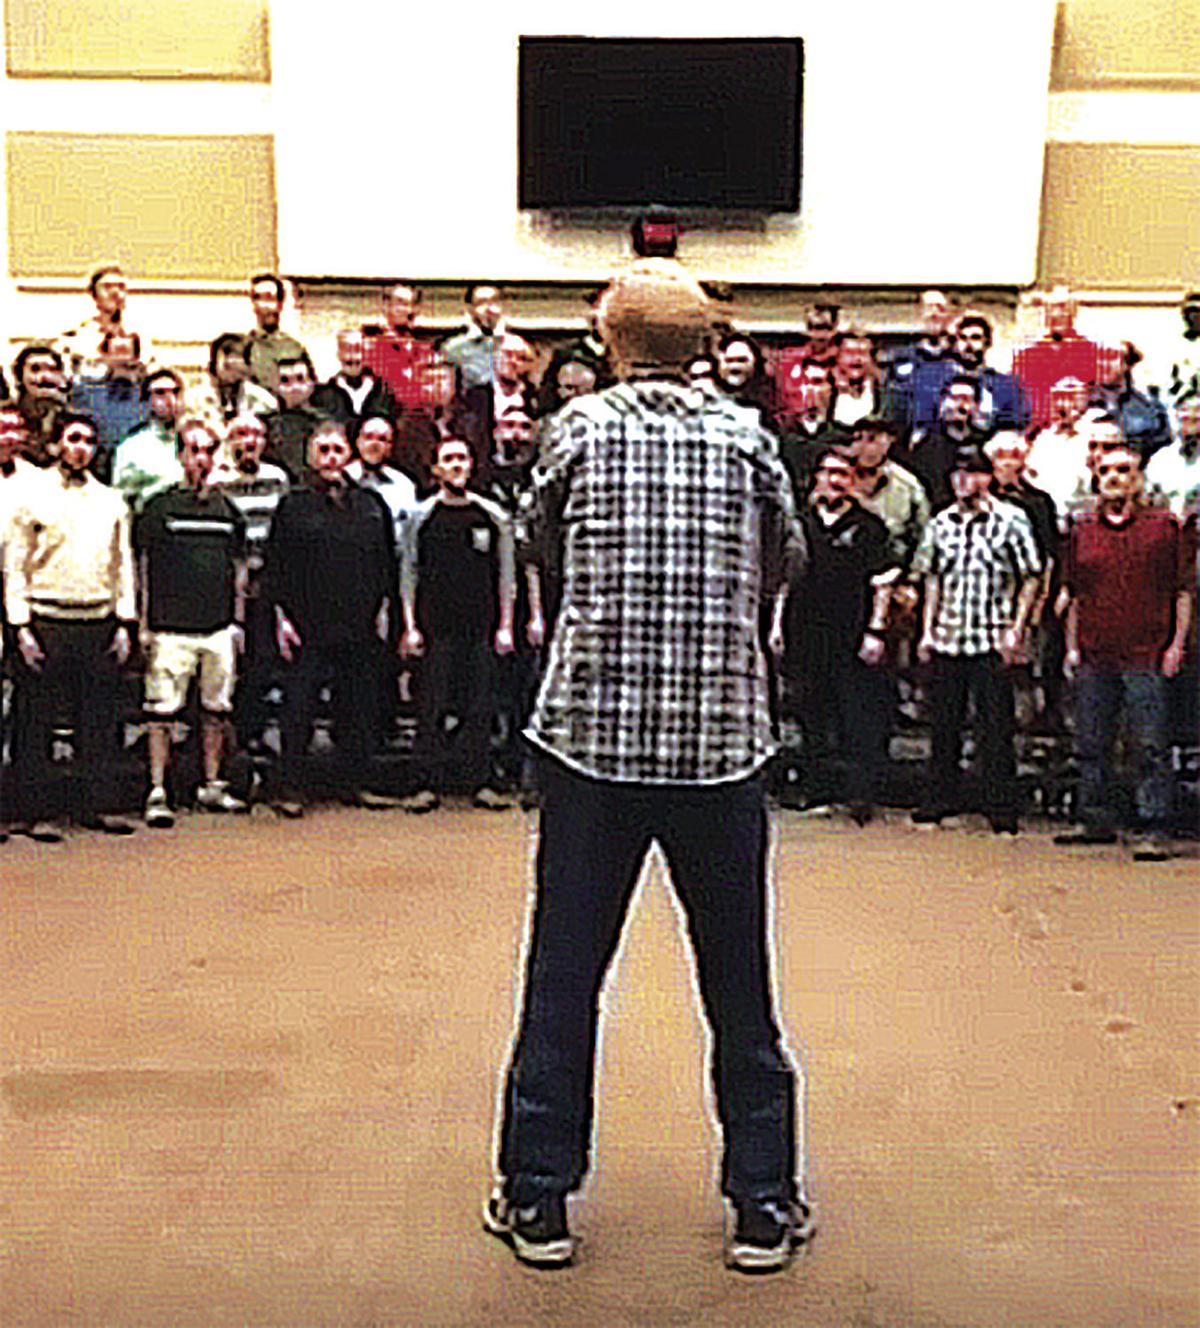 The north texas a cappella group vocal majority live streamed its